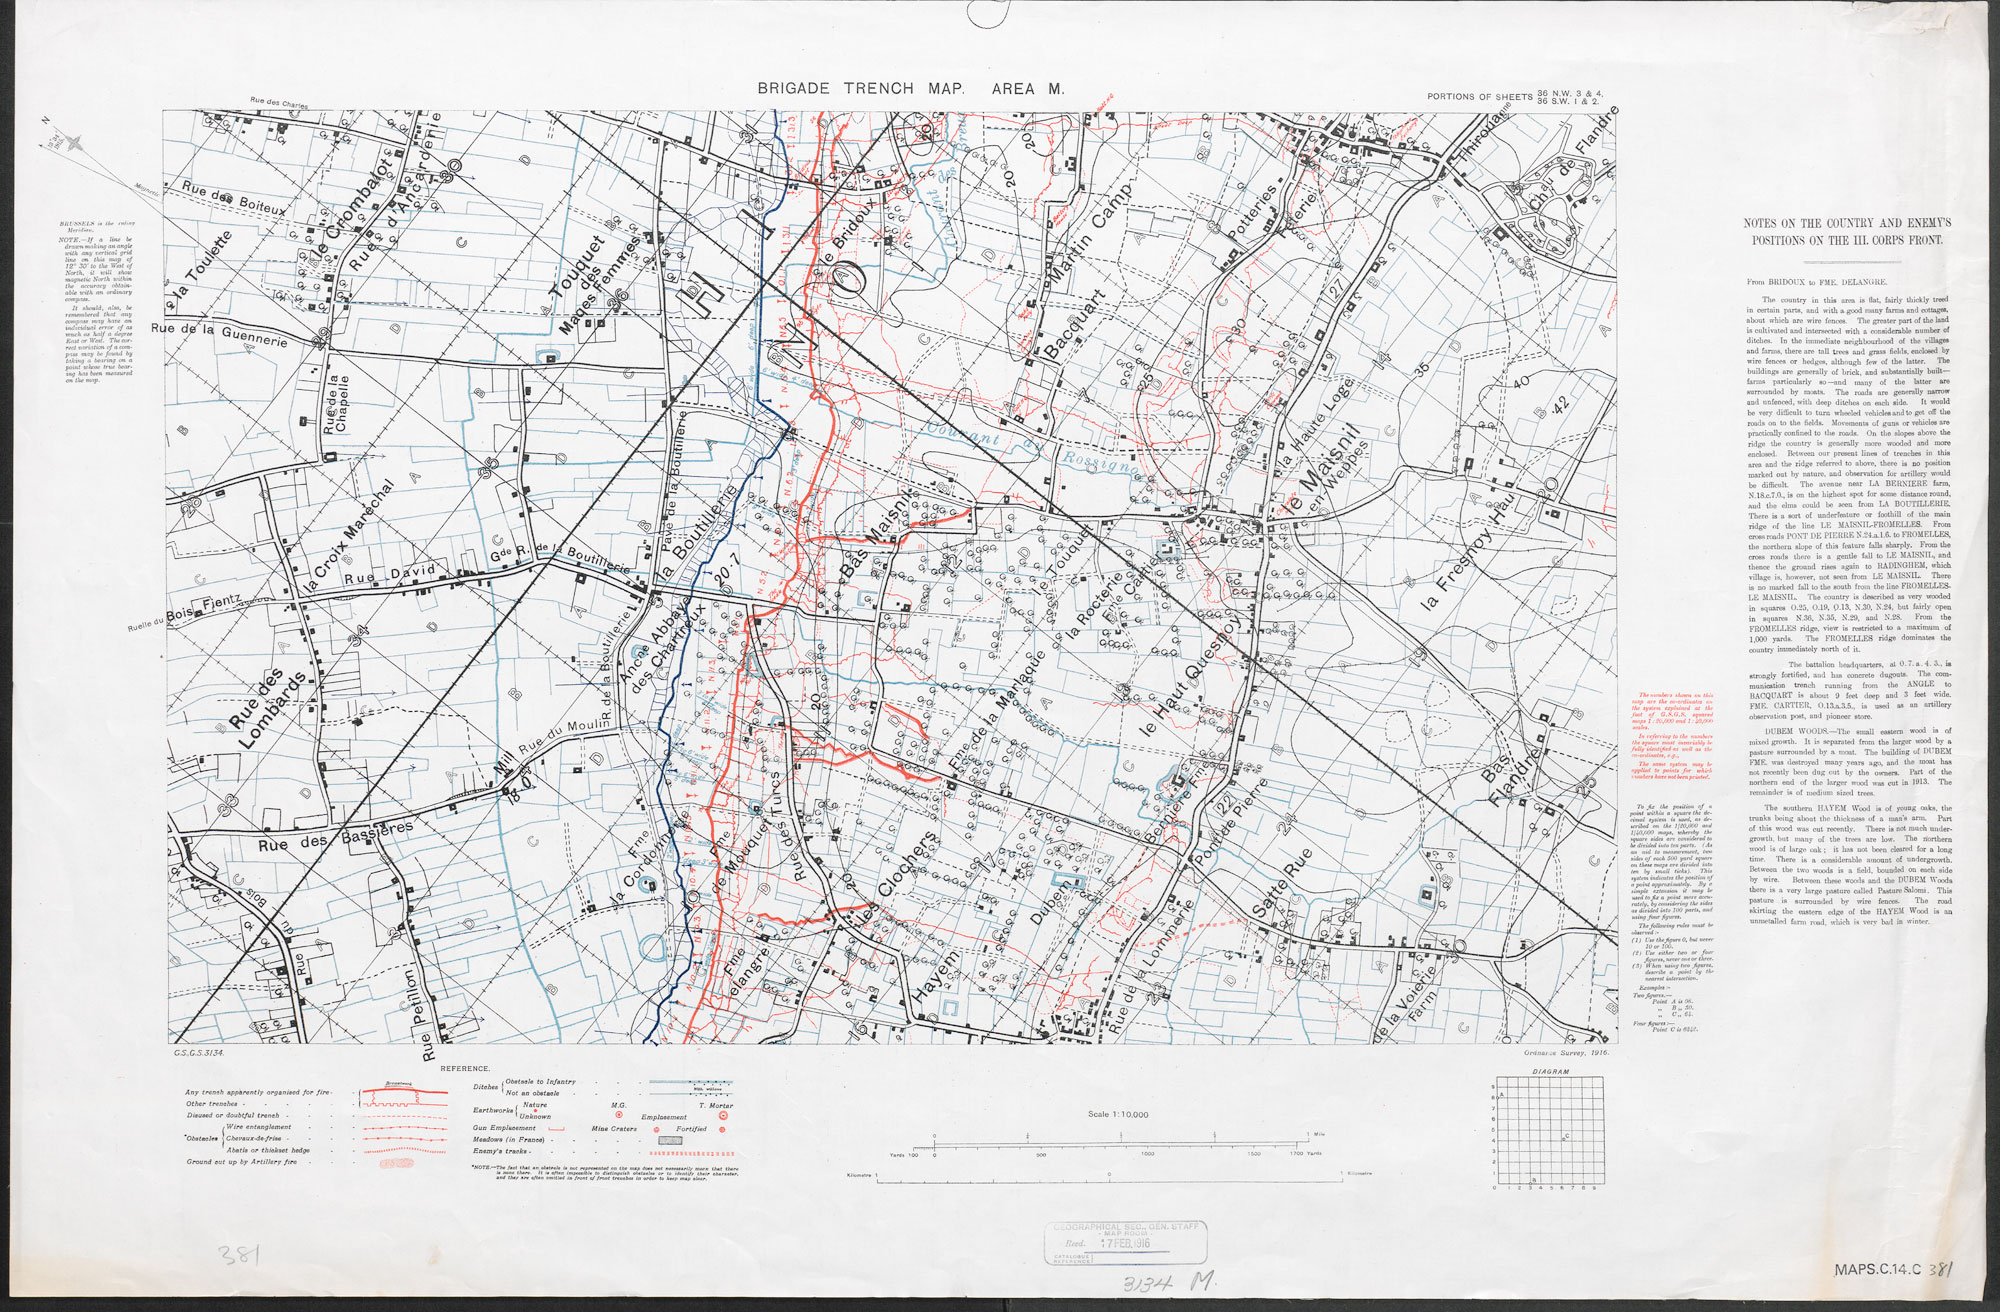 Large scale sectional Brigade Trench Map from 1916